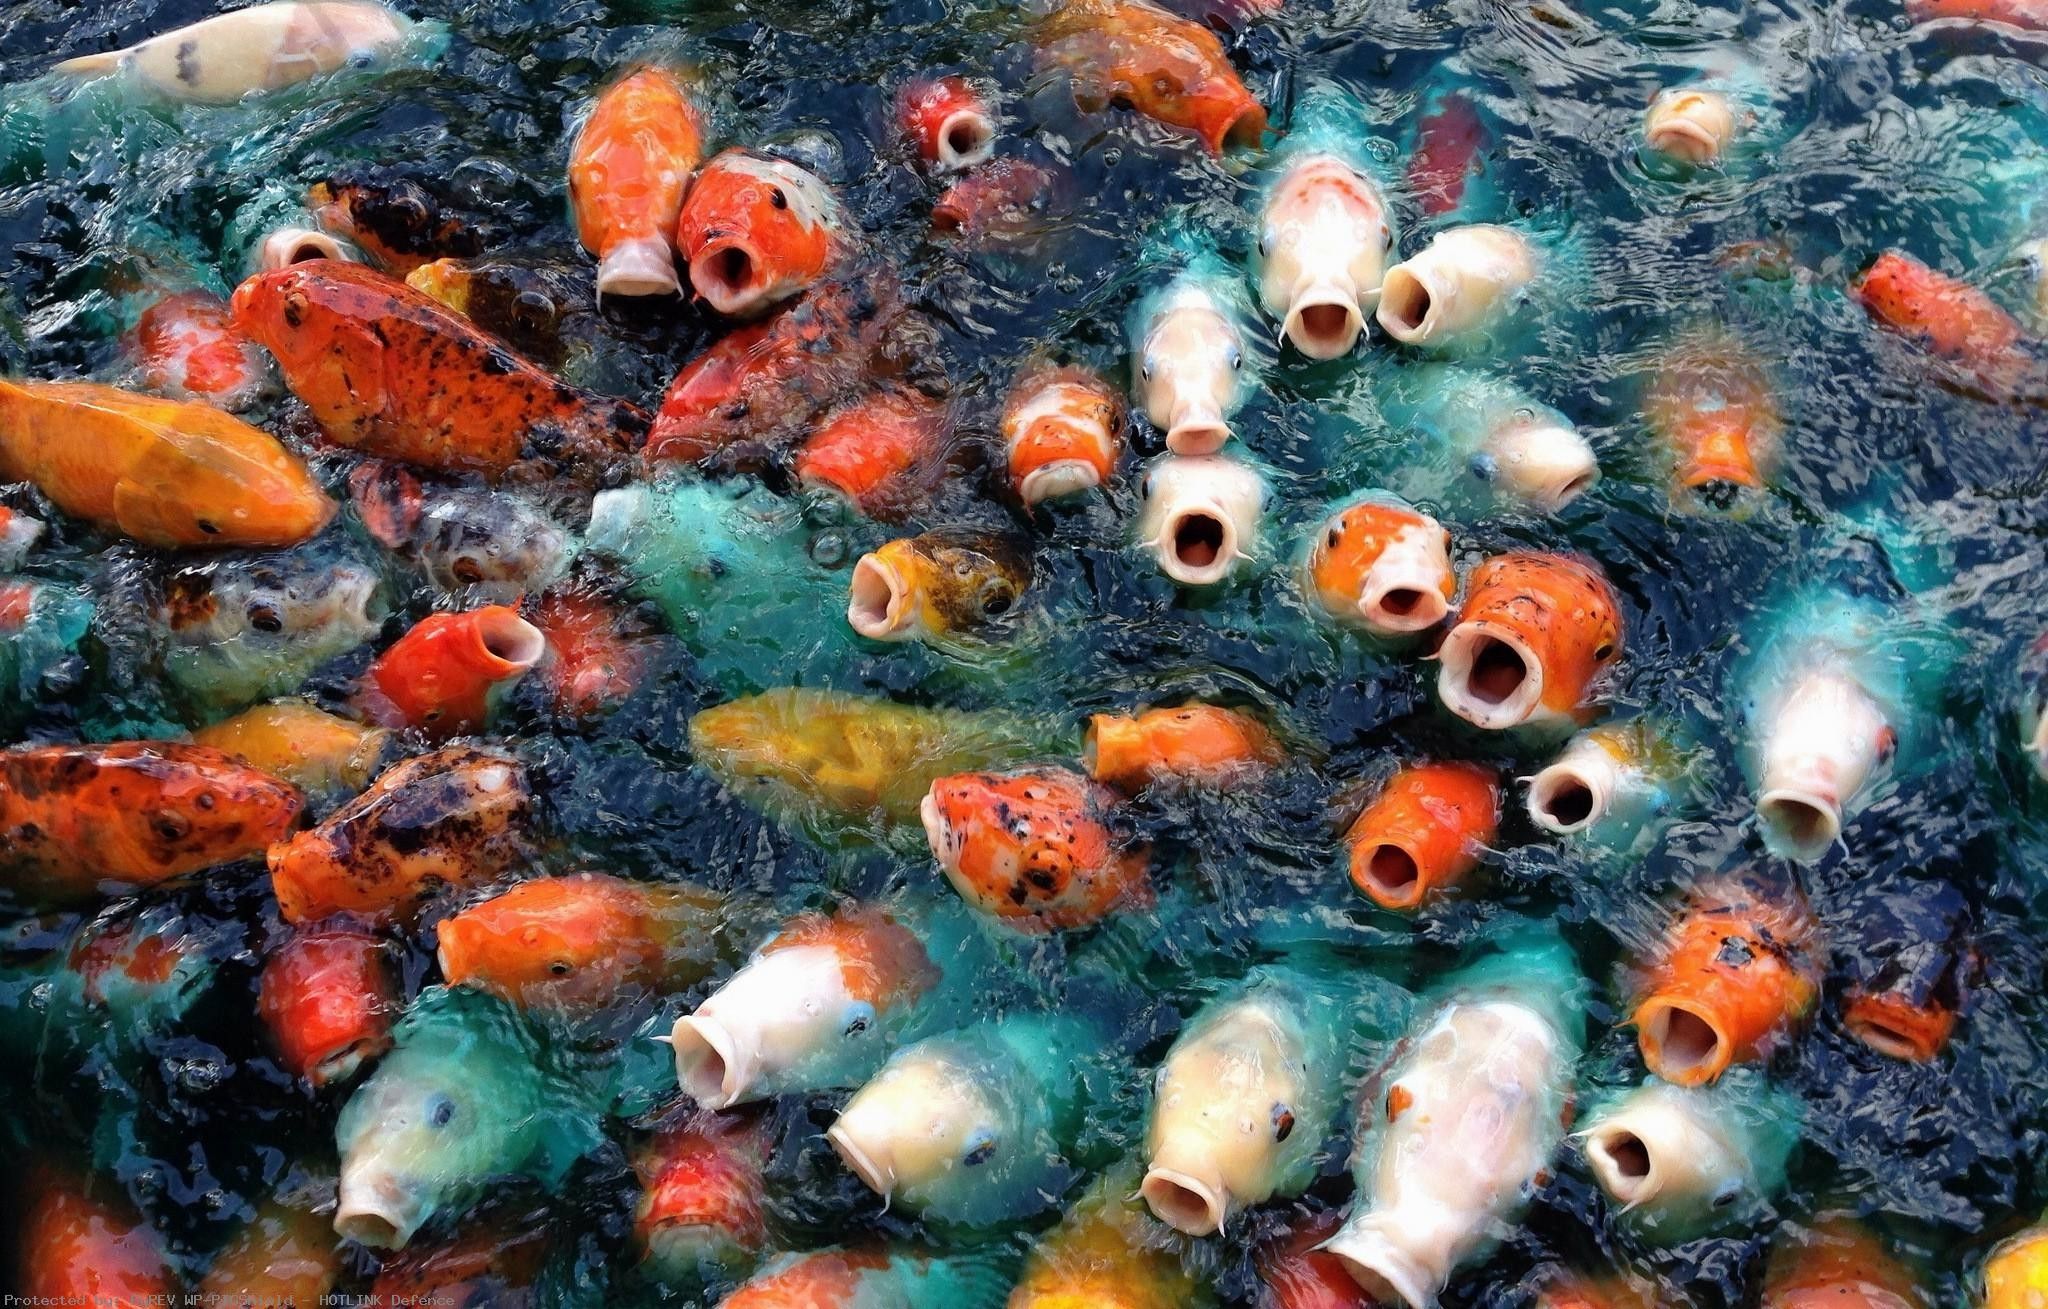 Koi-Fish-Live-for-Android-Free-Downloadcom-wallpaper-